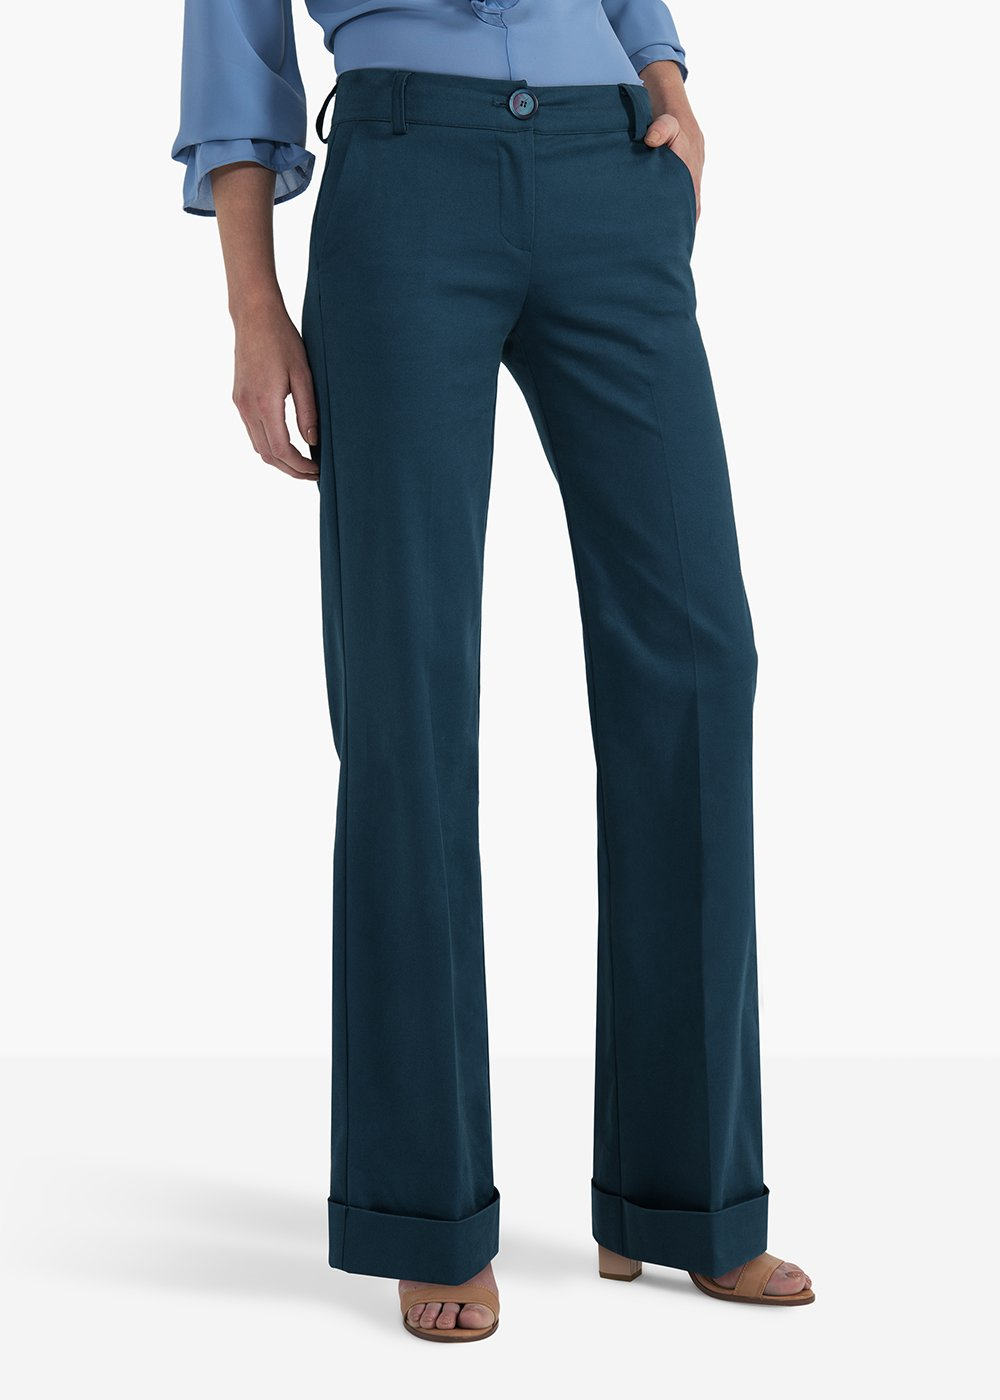 Pilad flared trousers with turn-up at the bottom